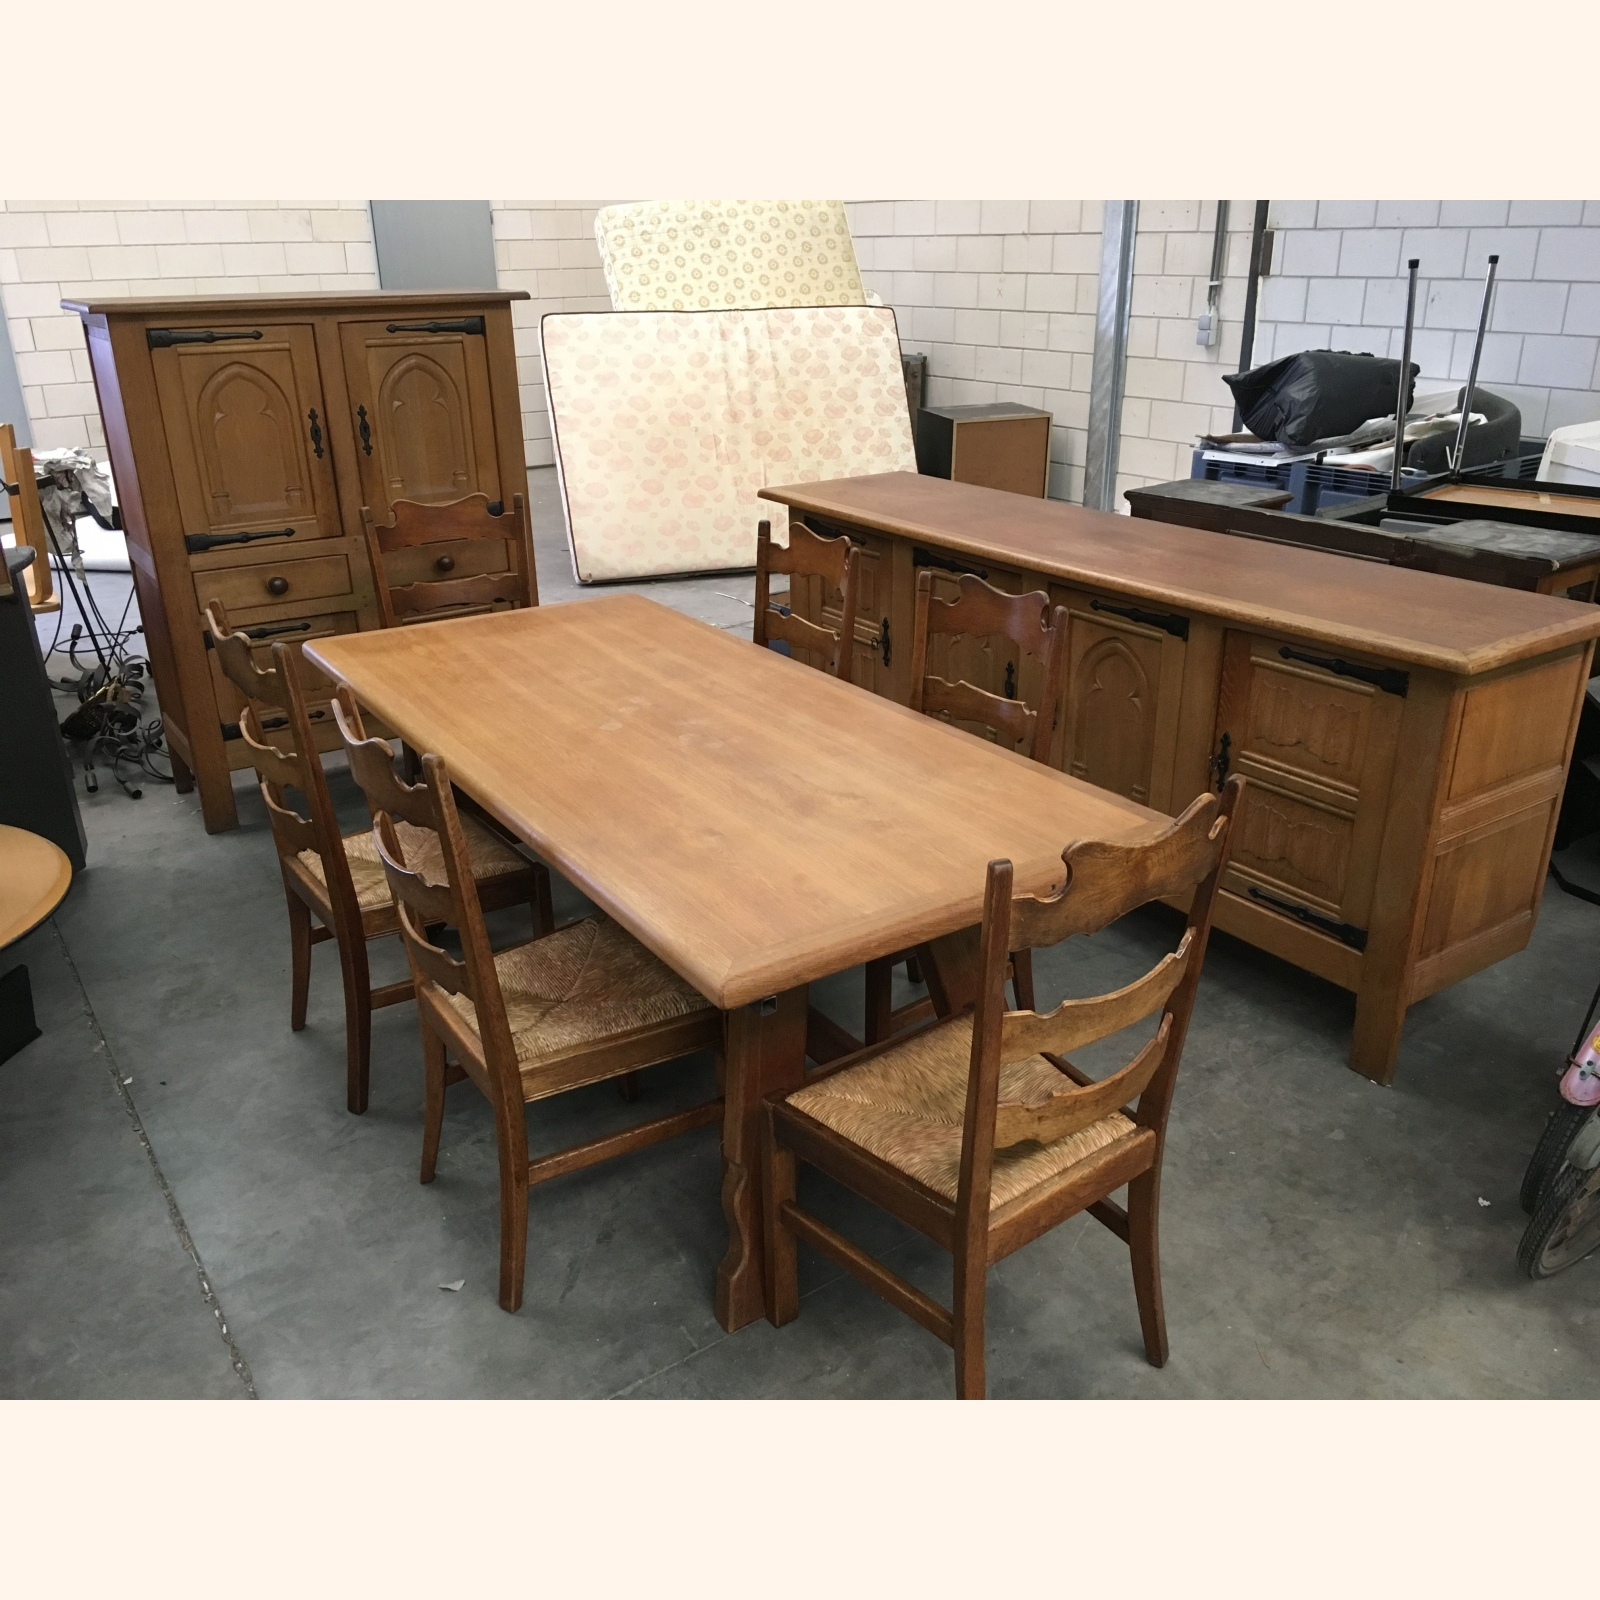 A Solid Wood Dining Room Furniture, Solid Wood Dining Room Sets